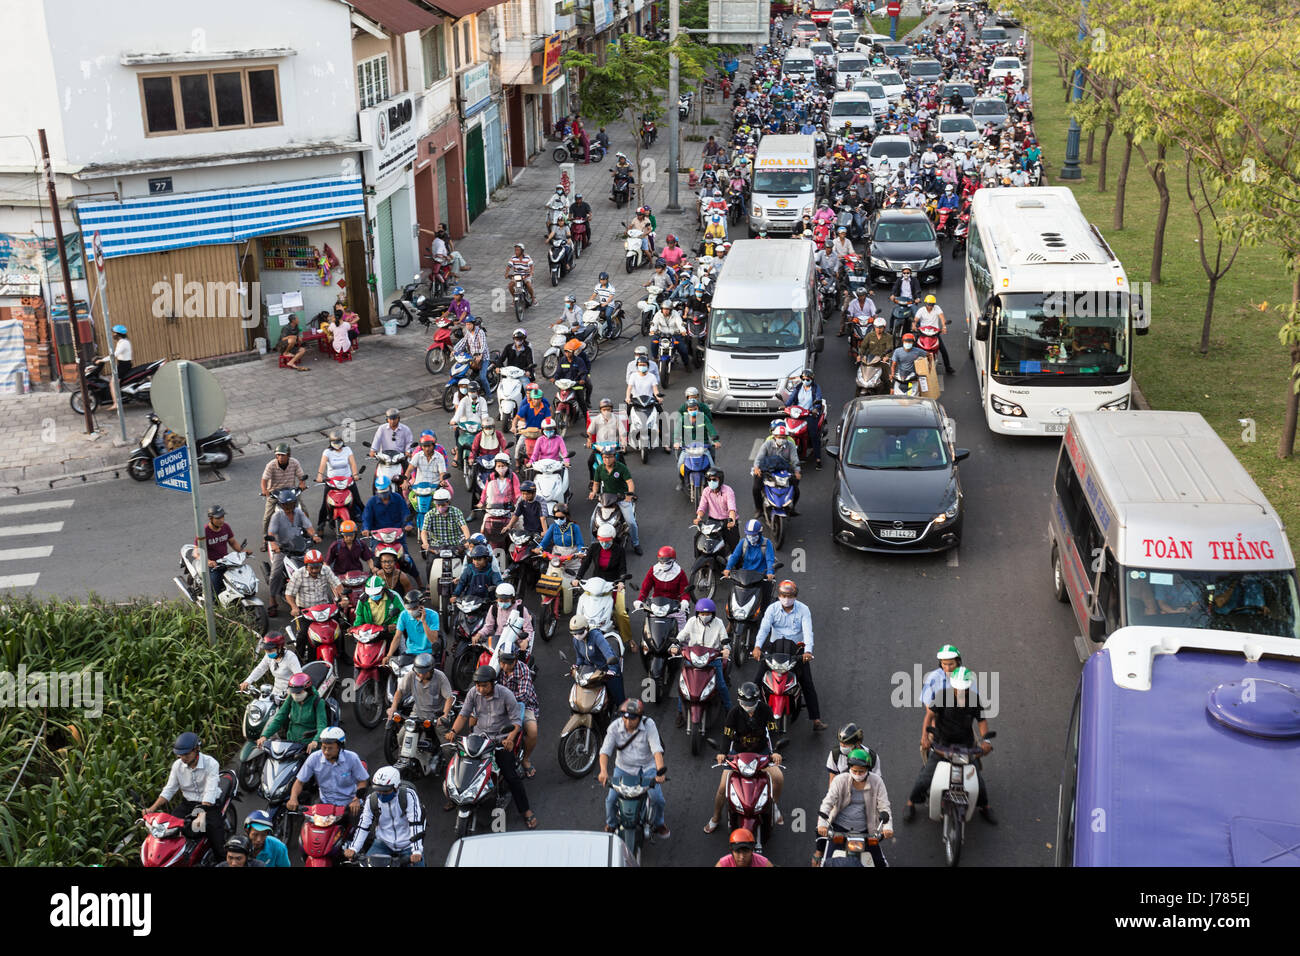 HO CHI MINH CITY, VIETNAM - Large number of motorcycles drives around cars in the busy street of Ho Chi Minh City, - Stock Image